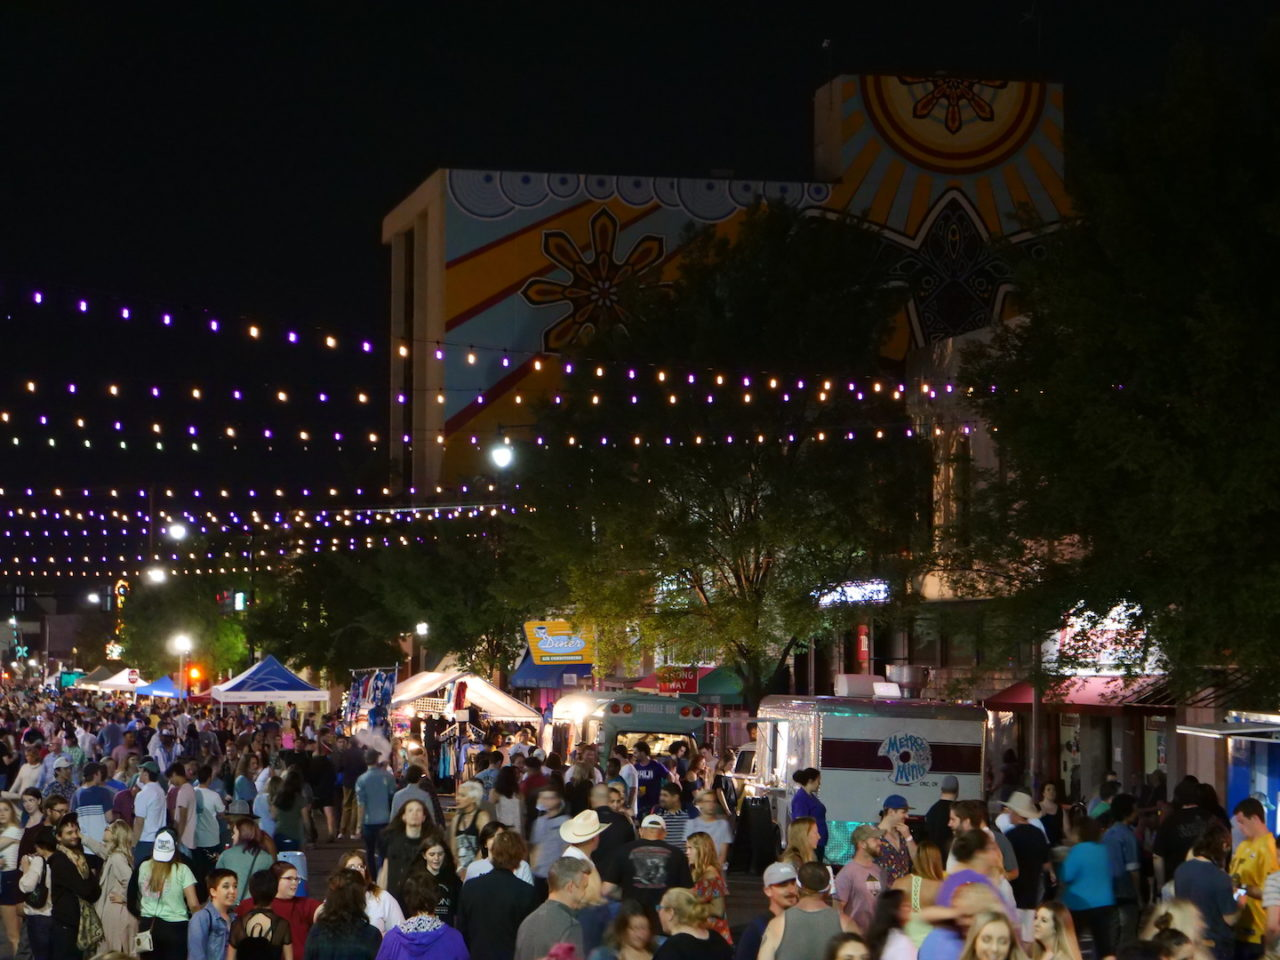 Downtown Norman during the Norman Music Festival - photo by Dennis Spielman